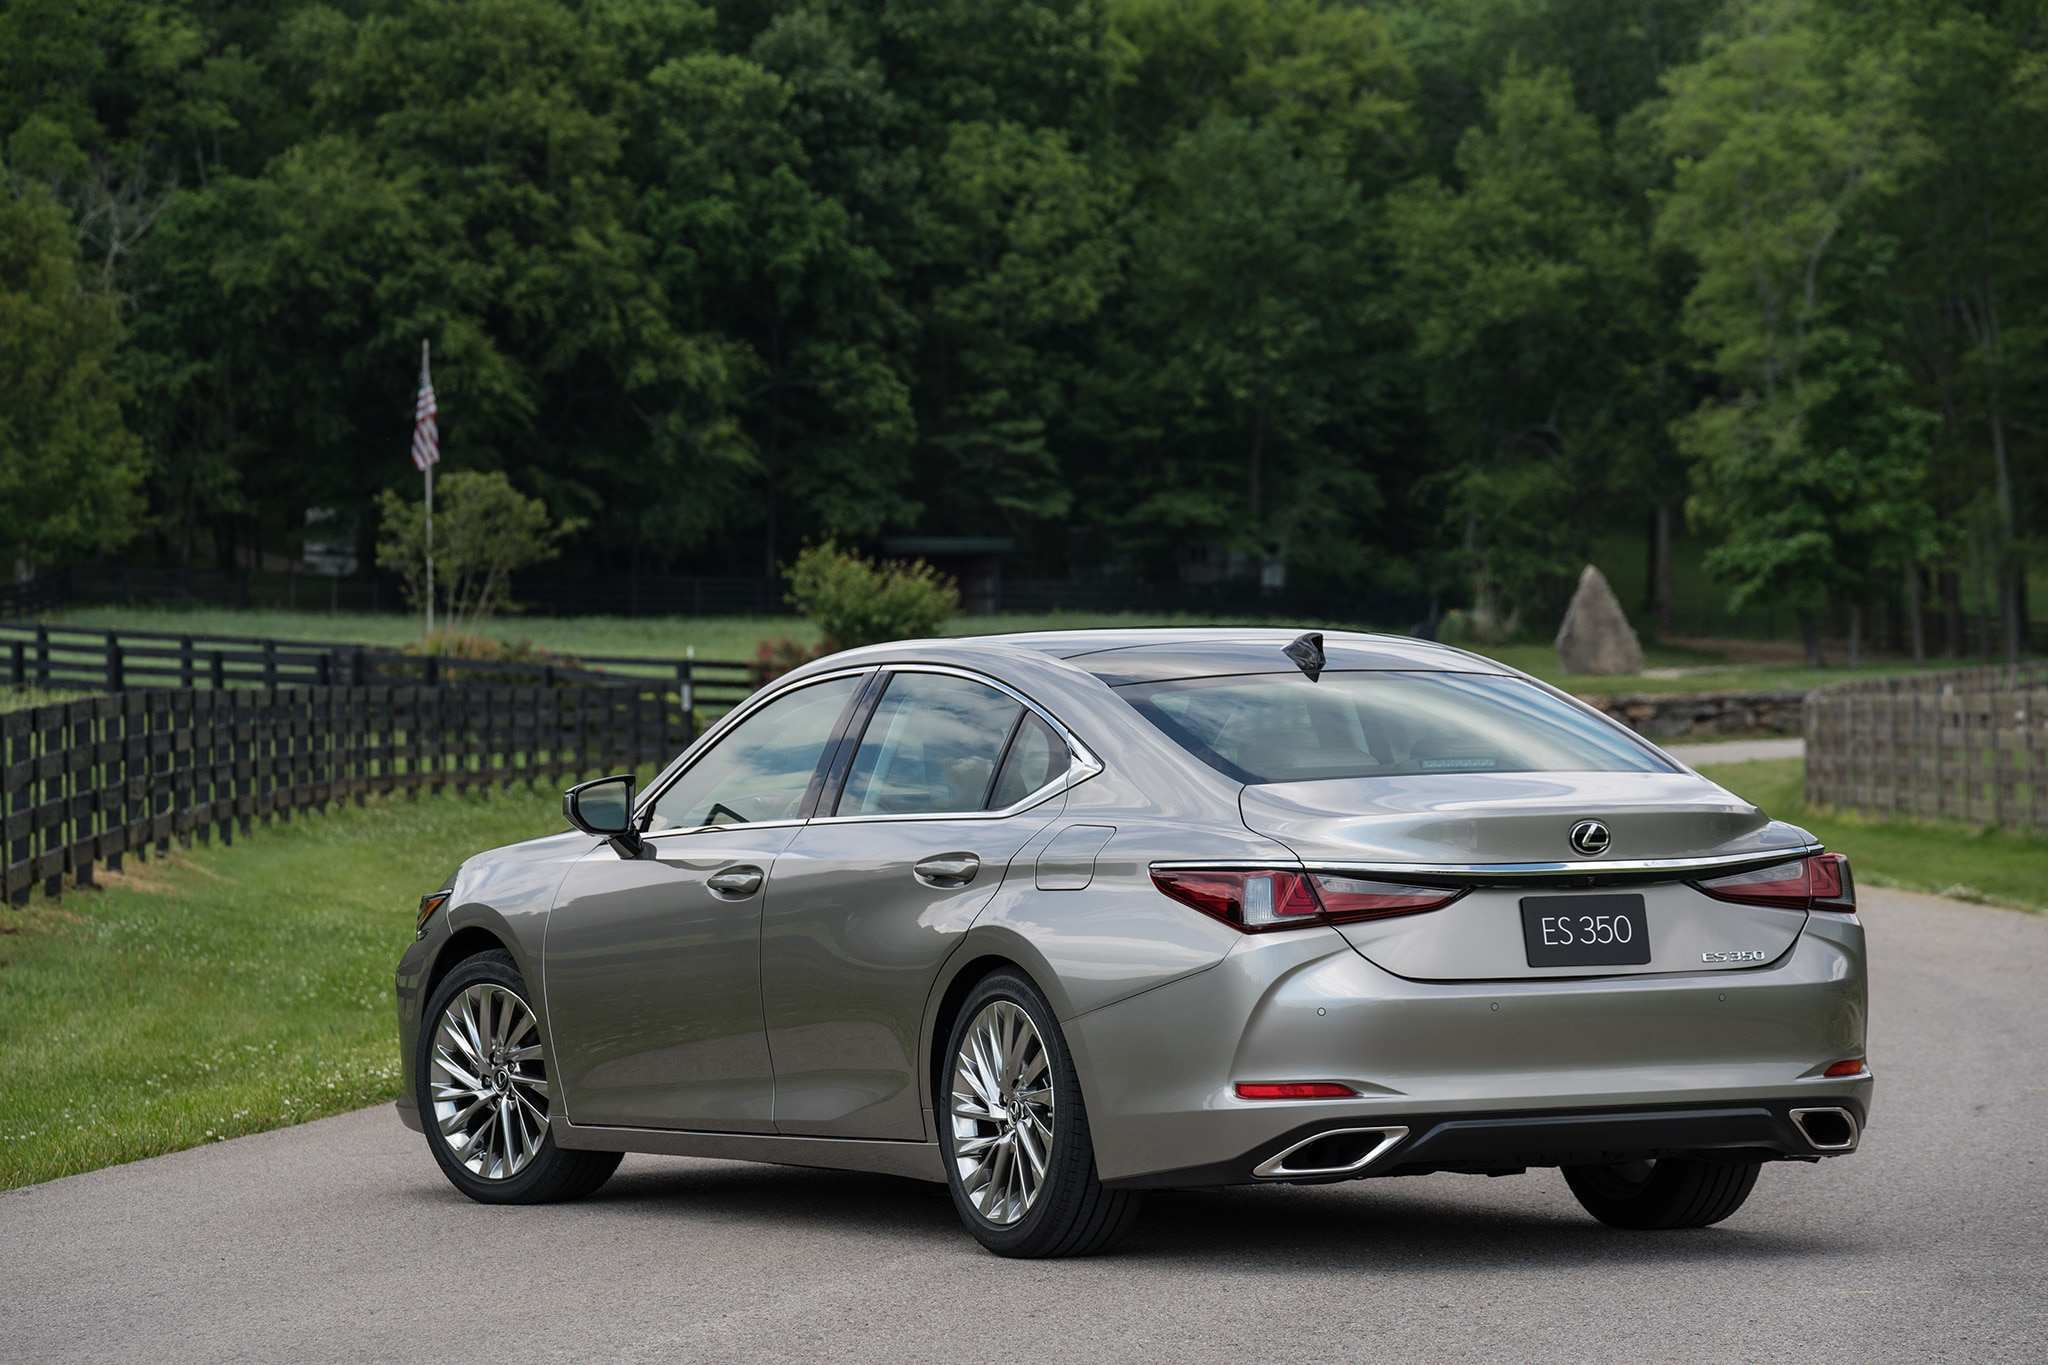 96 Best Review 2019 Lexus Es 350 Awd Engine for 2019 Lexus Es 350 Awd